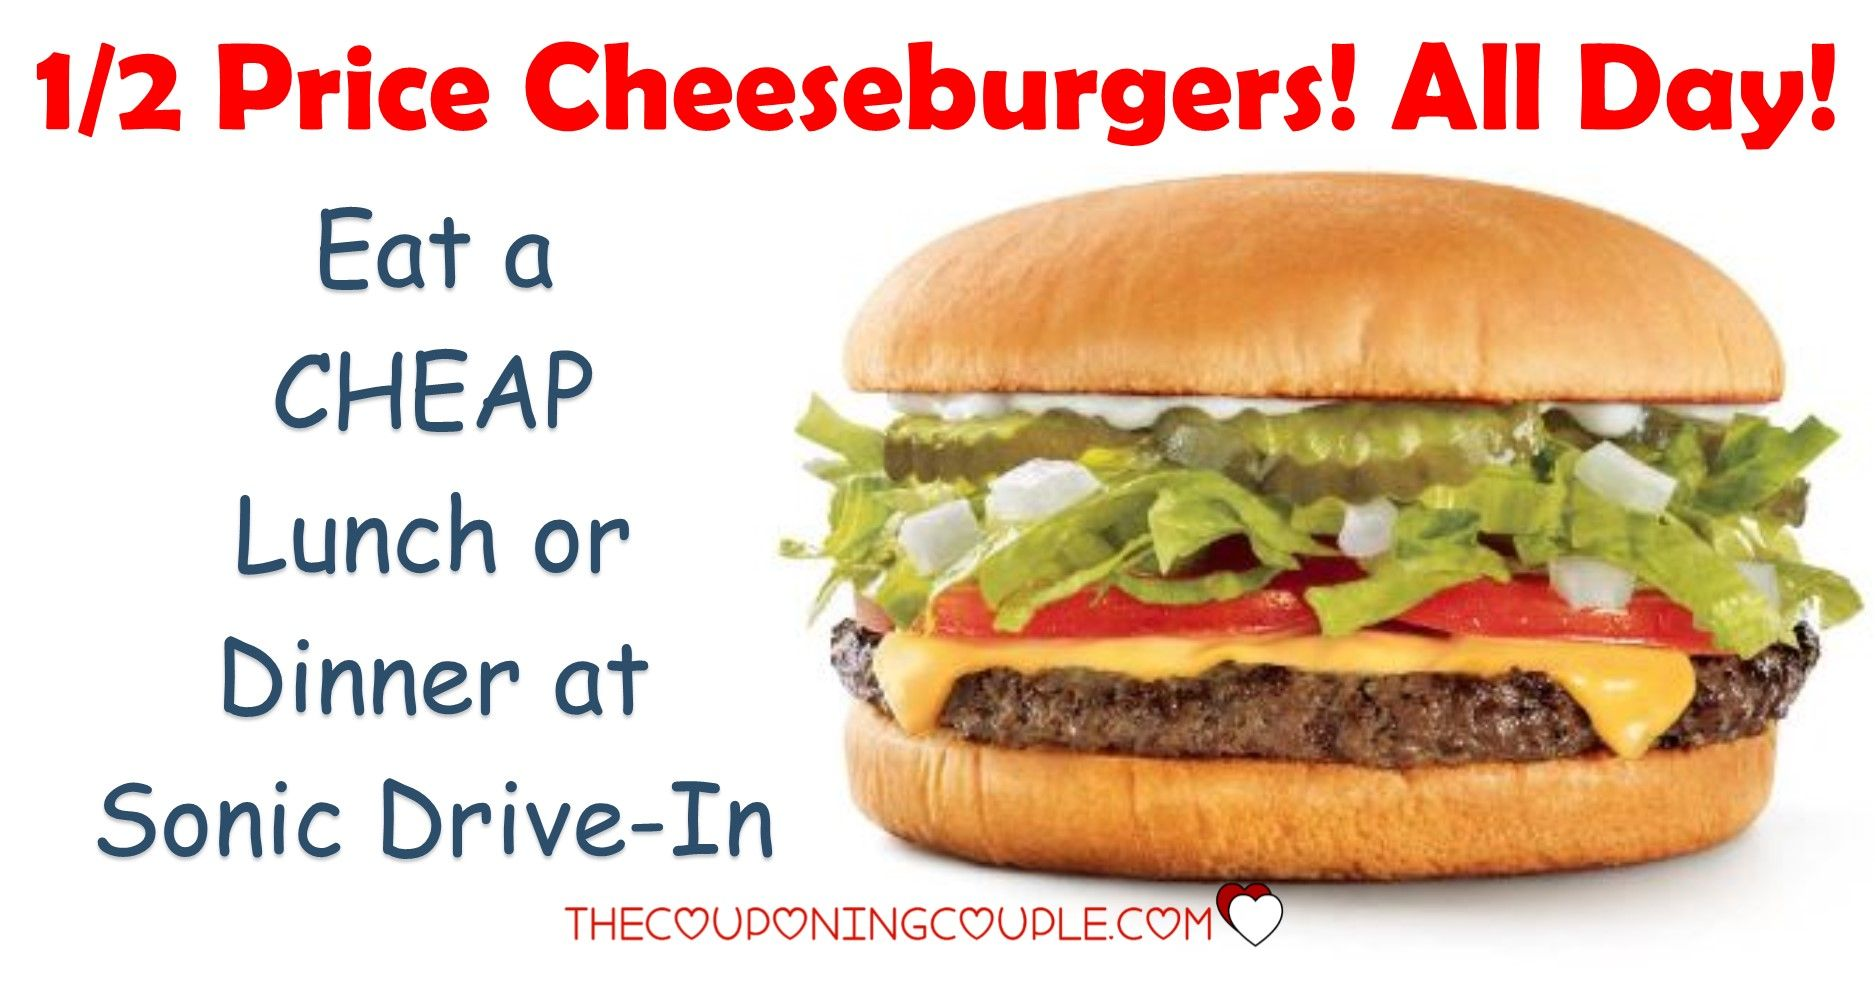 Half Price Cheeseburgers At Sonic Drive Ins All Day 4 10 19 Sonic Drive In Cheap Lunch Vegan Story